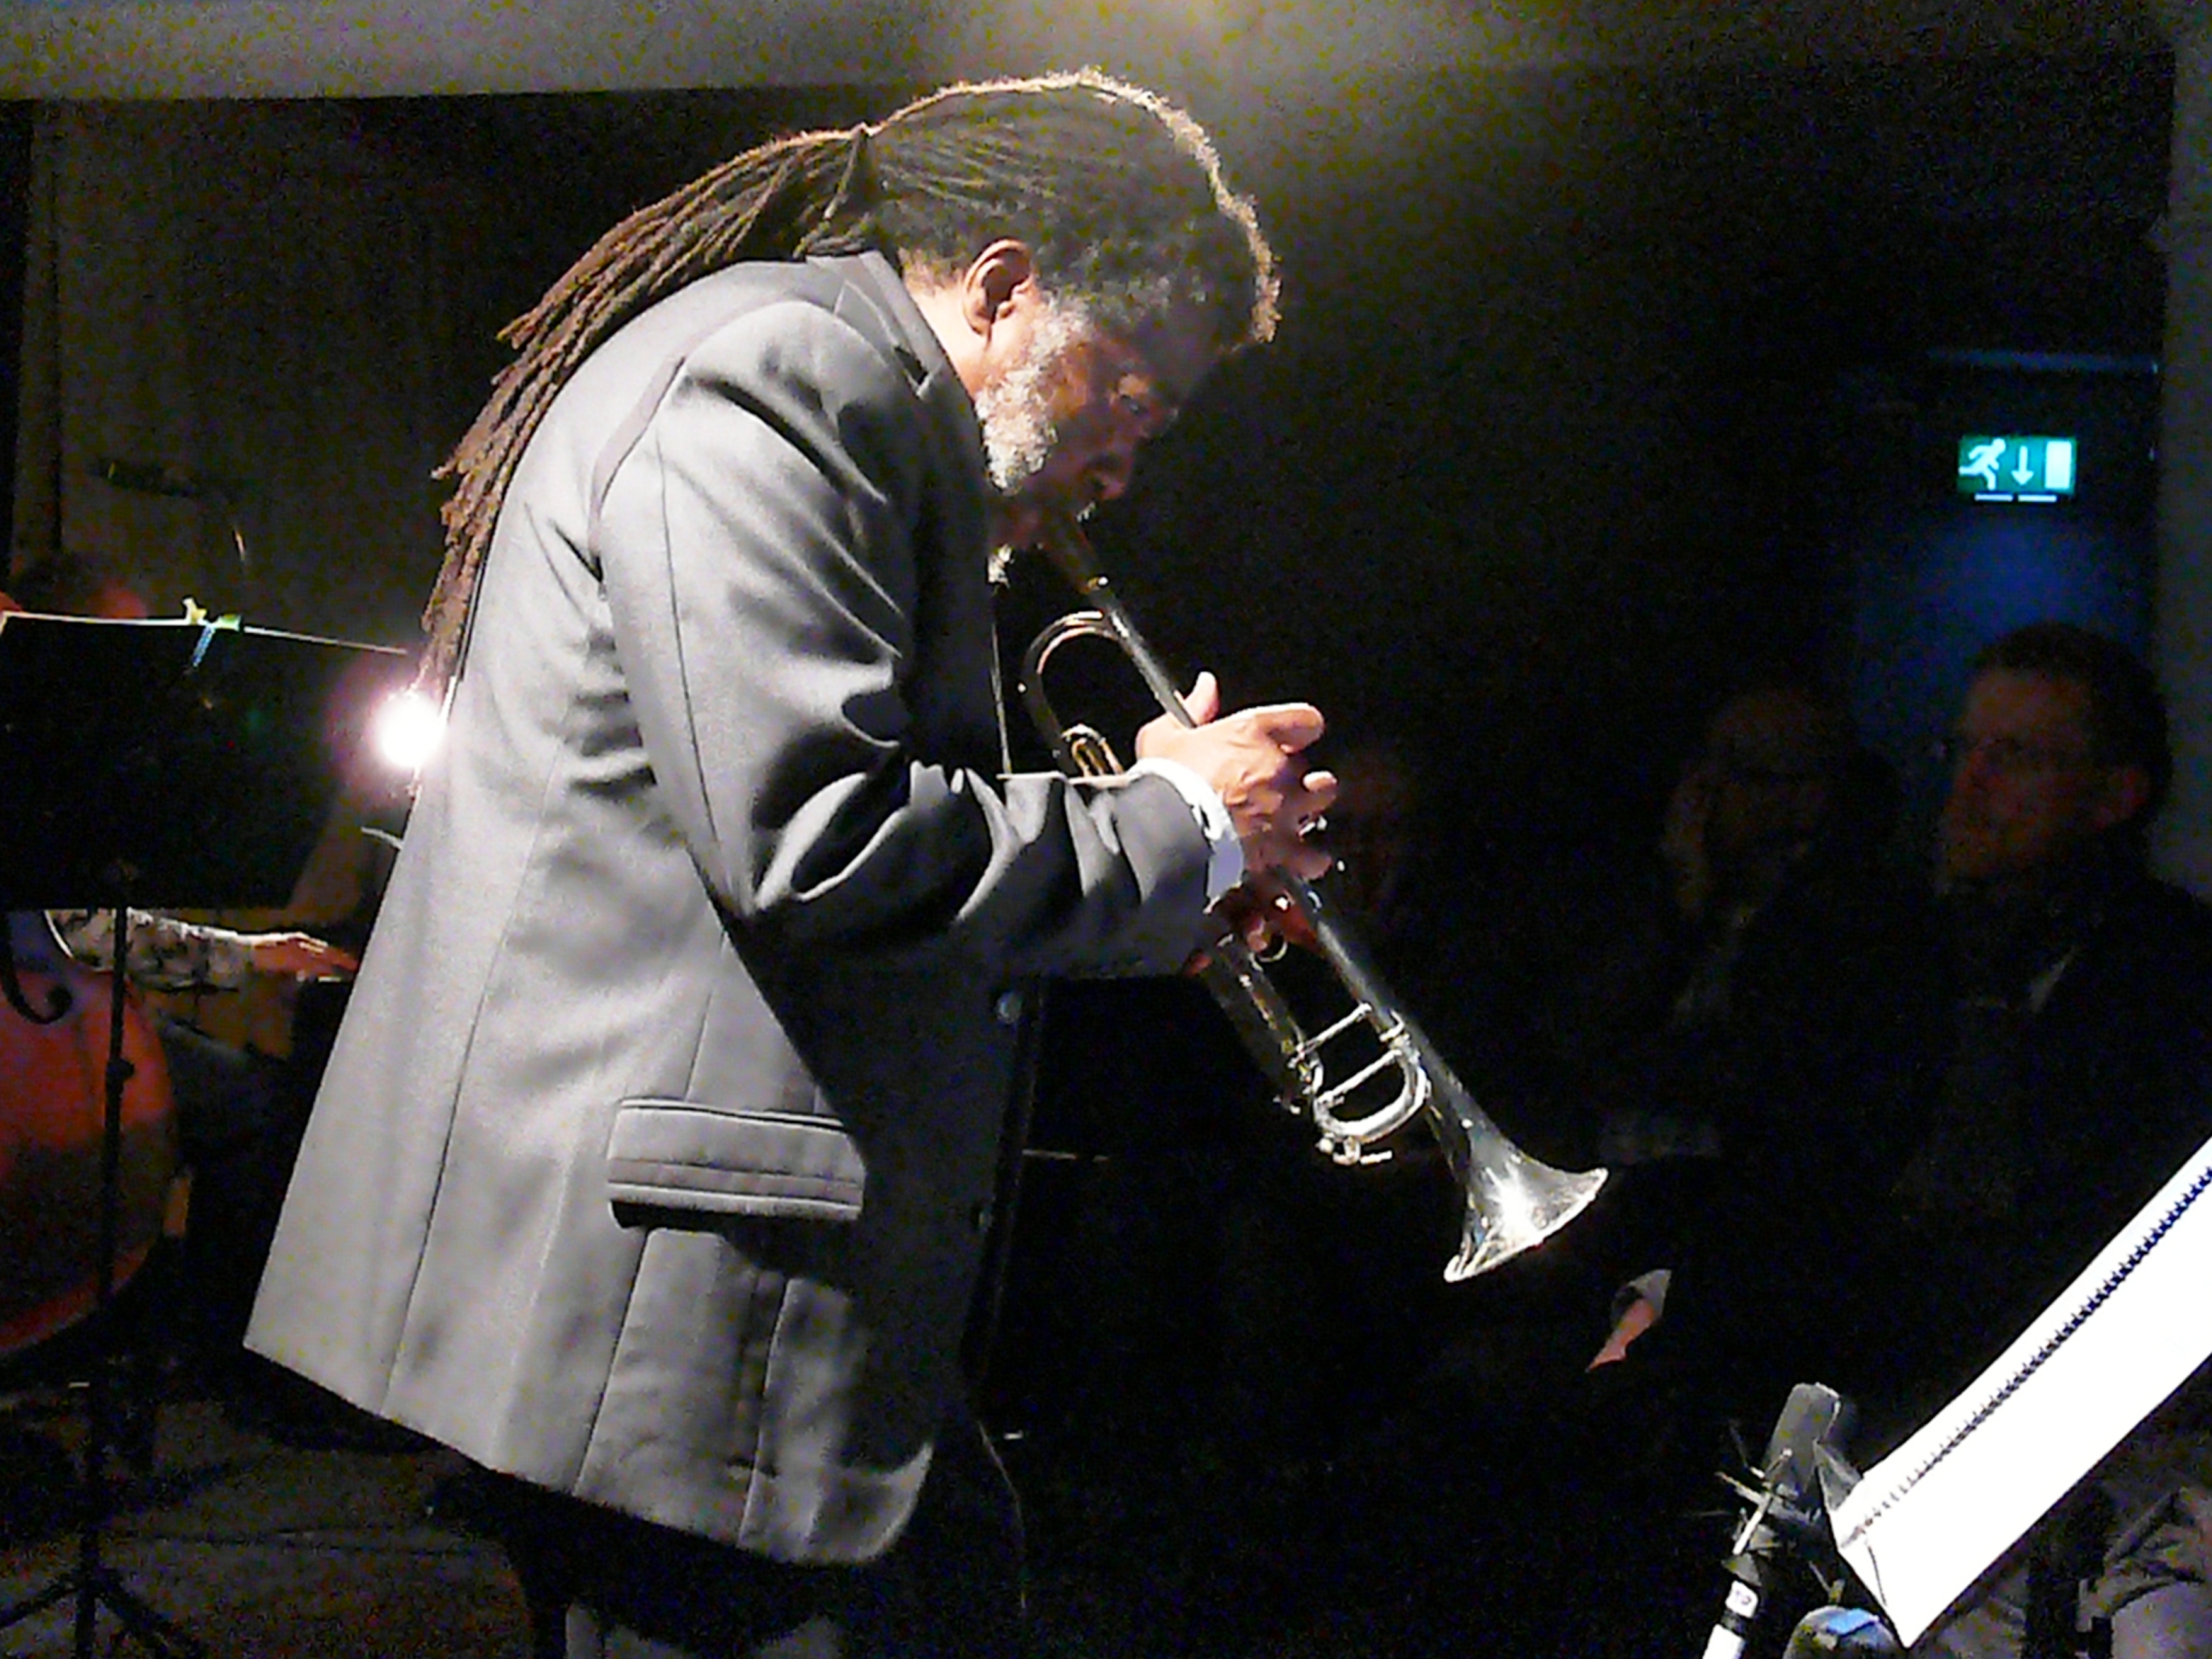 Wadada leo smith at cafe oto as part of the london jazz festival in november 2013